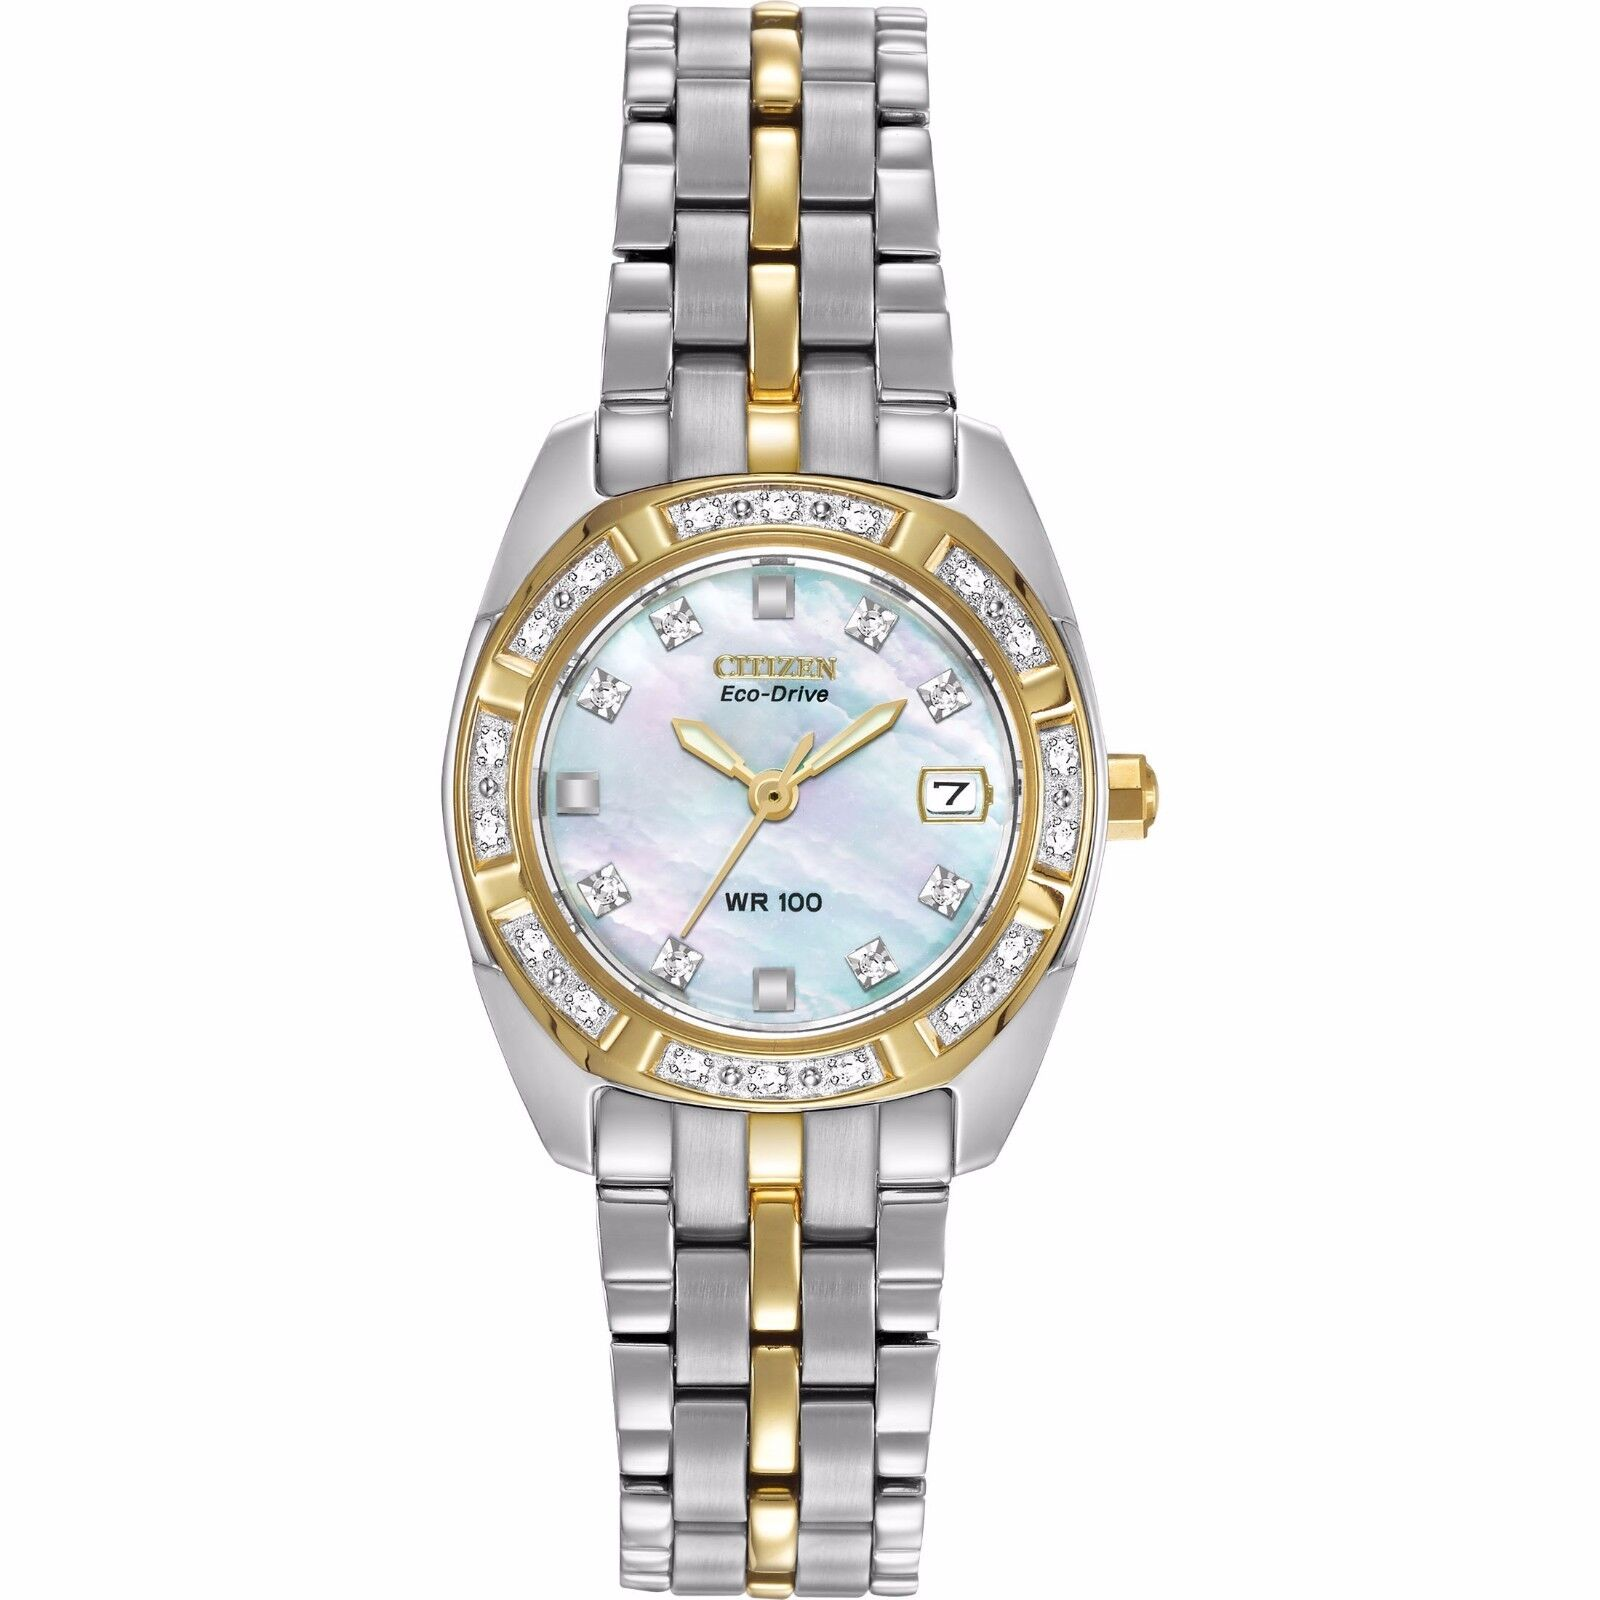 $97.99 - Citizen Eco-Drive Women's EW1594-55D Paladion Diamond Bezel and Markers Watch